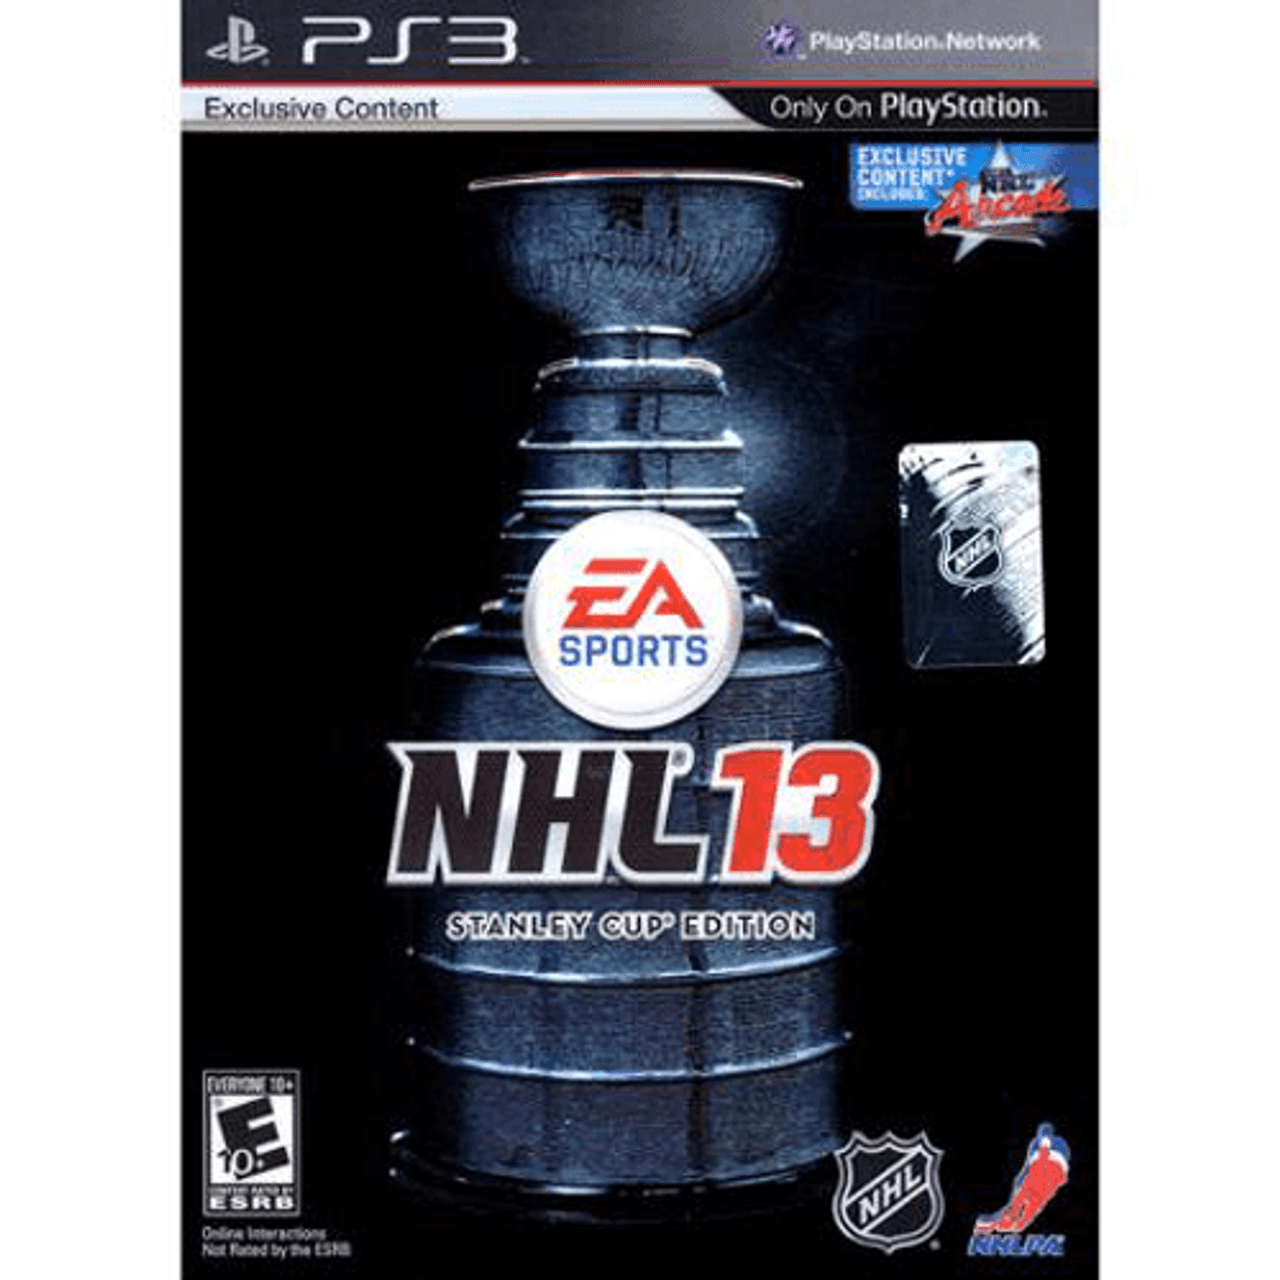 nhl 13 stanley cup edition ps3 game for sale dkoldies PSP 3 System PSP Manual PDF English